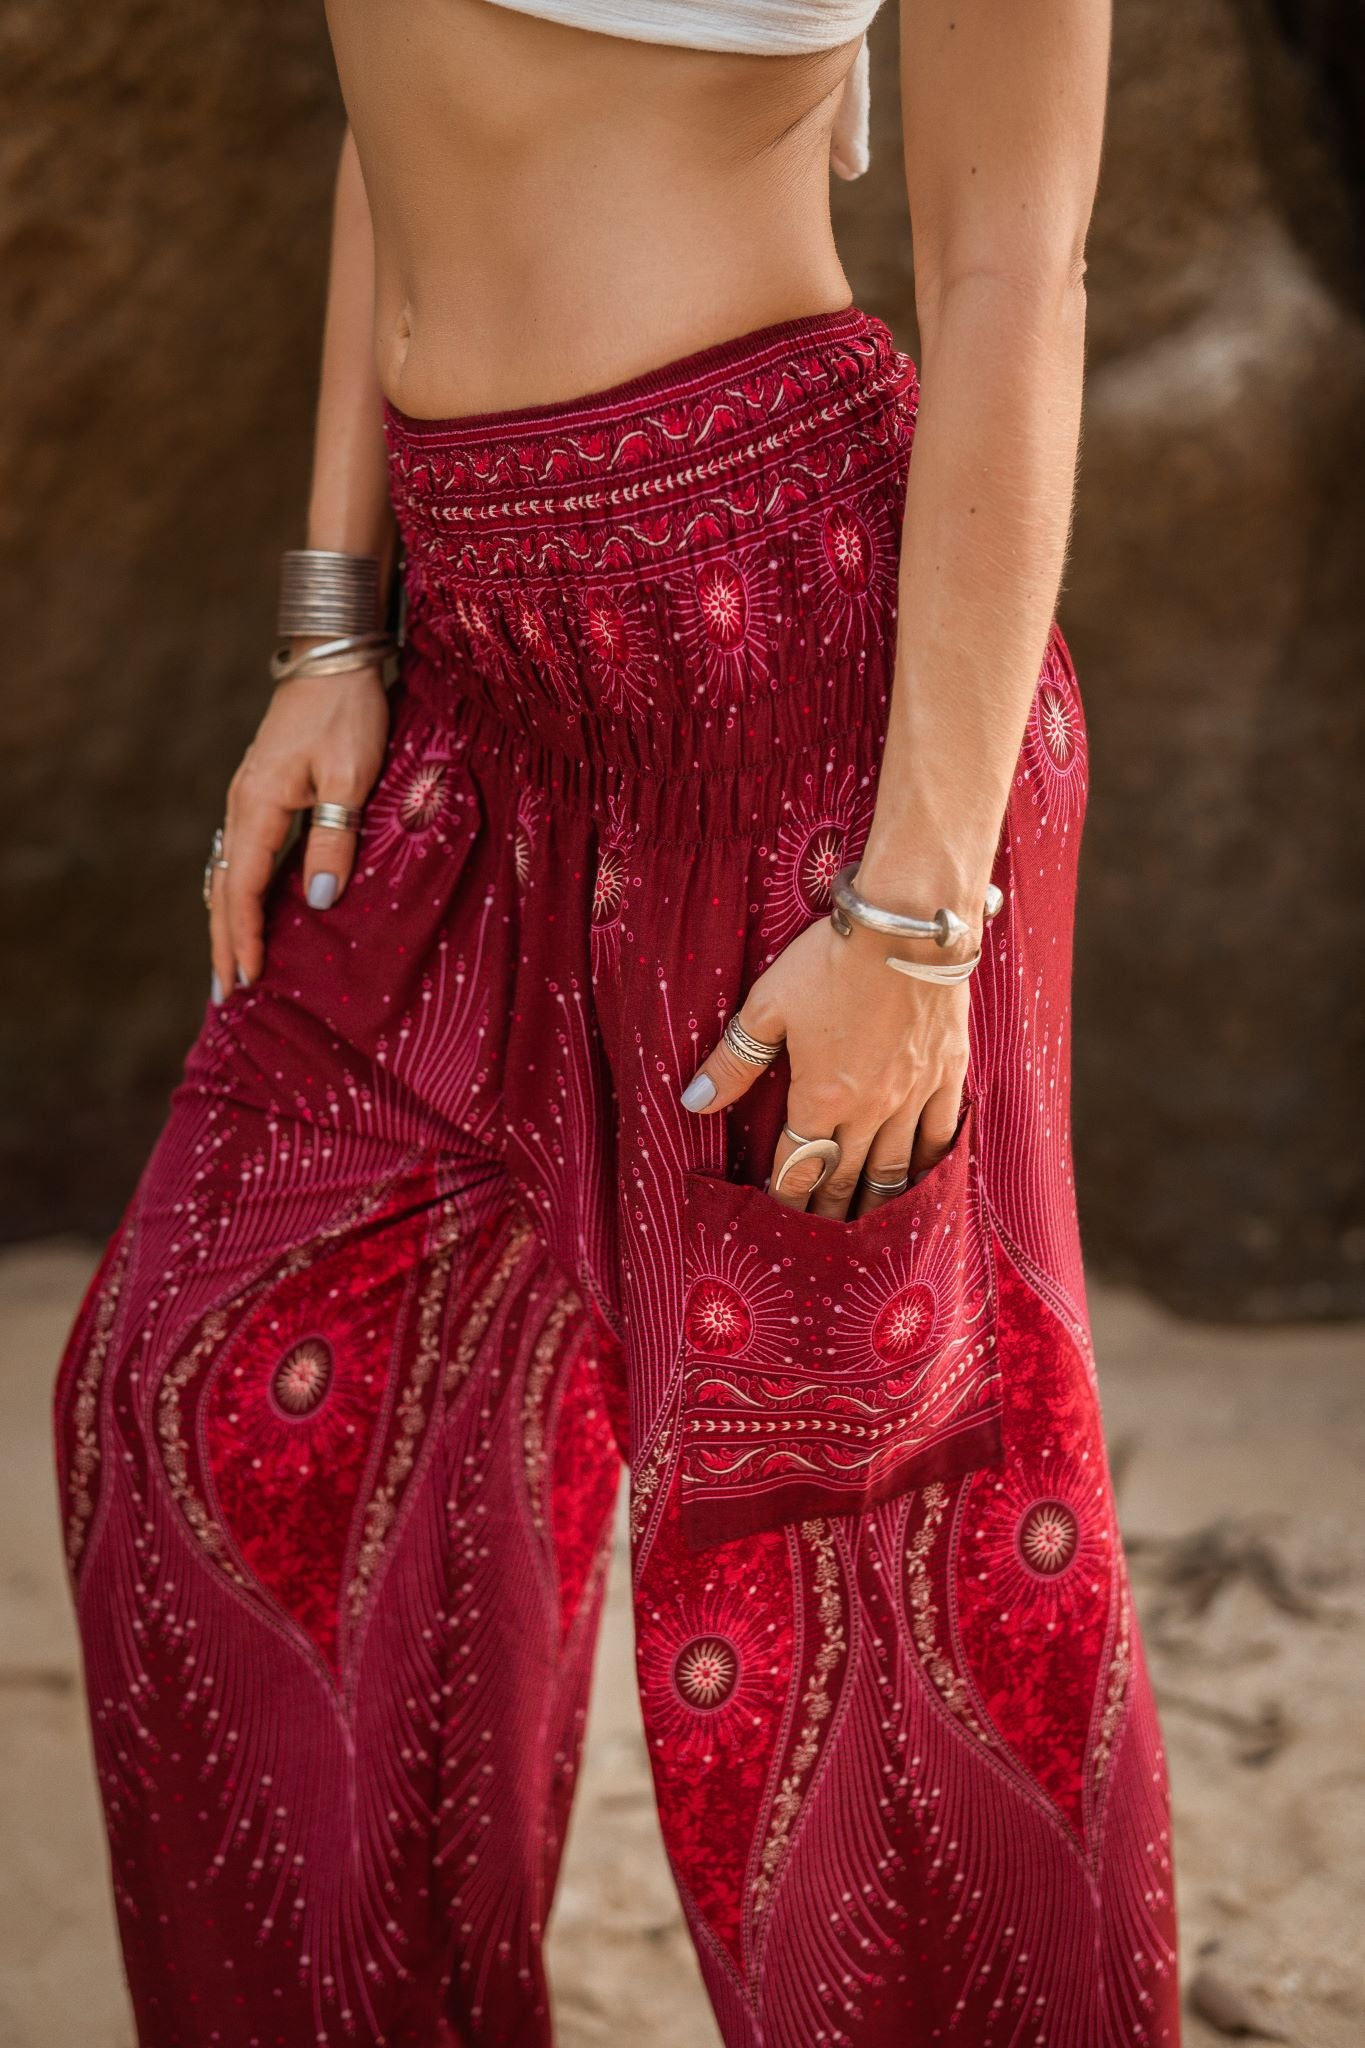 High Cut Harem Pants - Dazzling Peacock Feather - Red